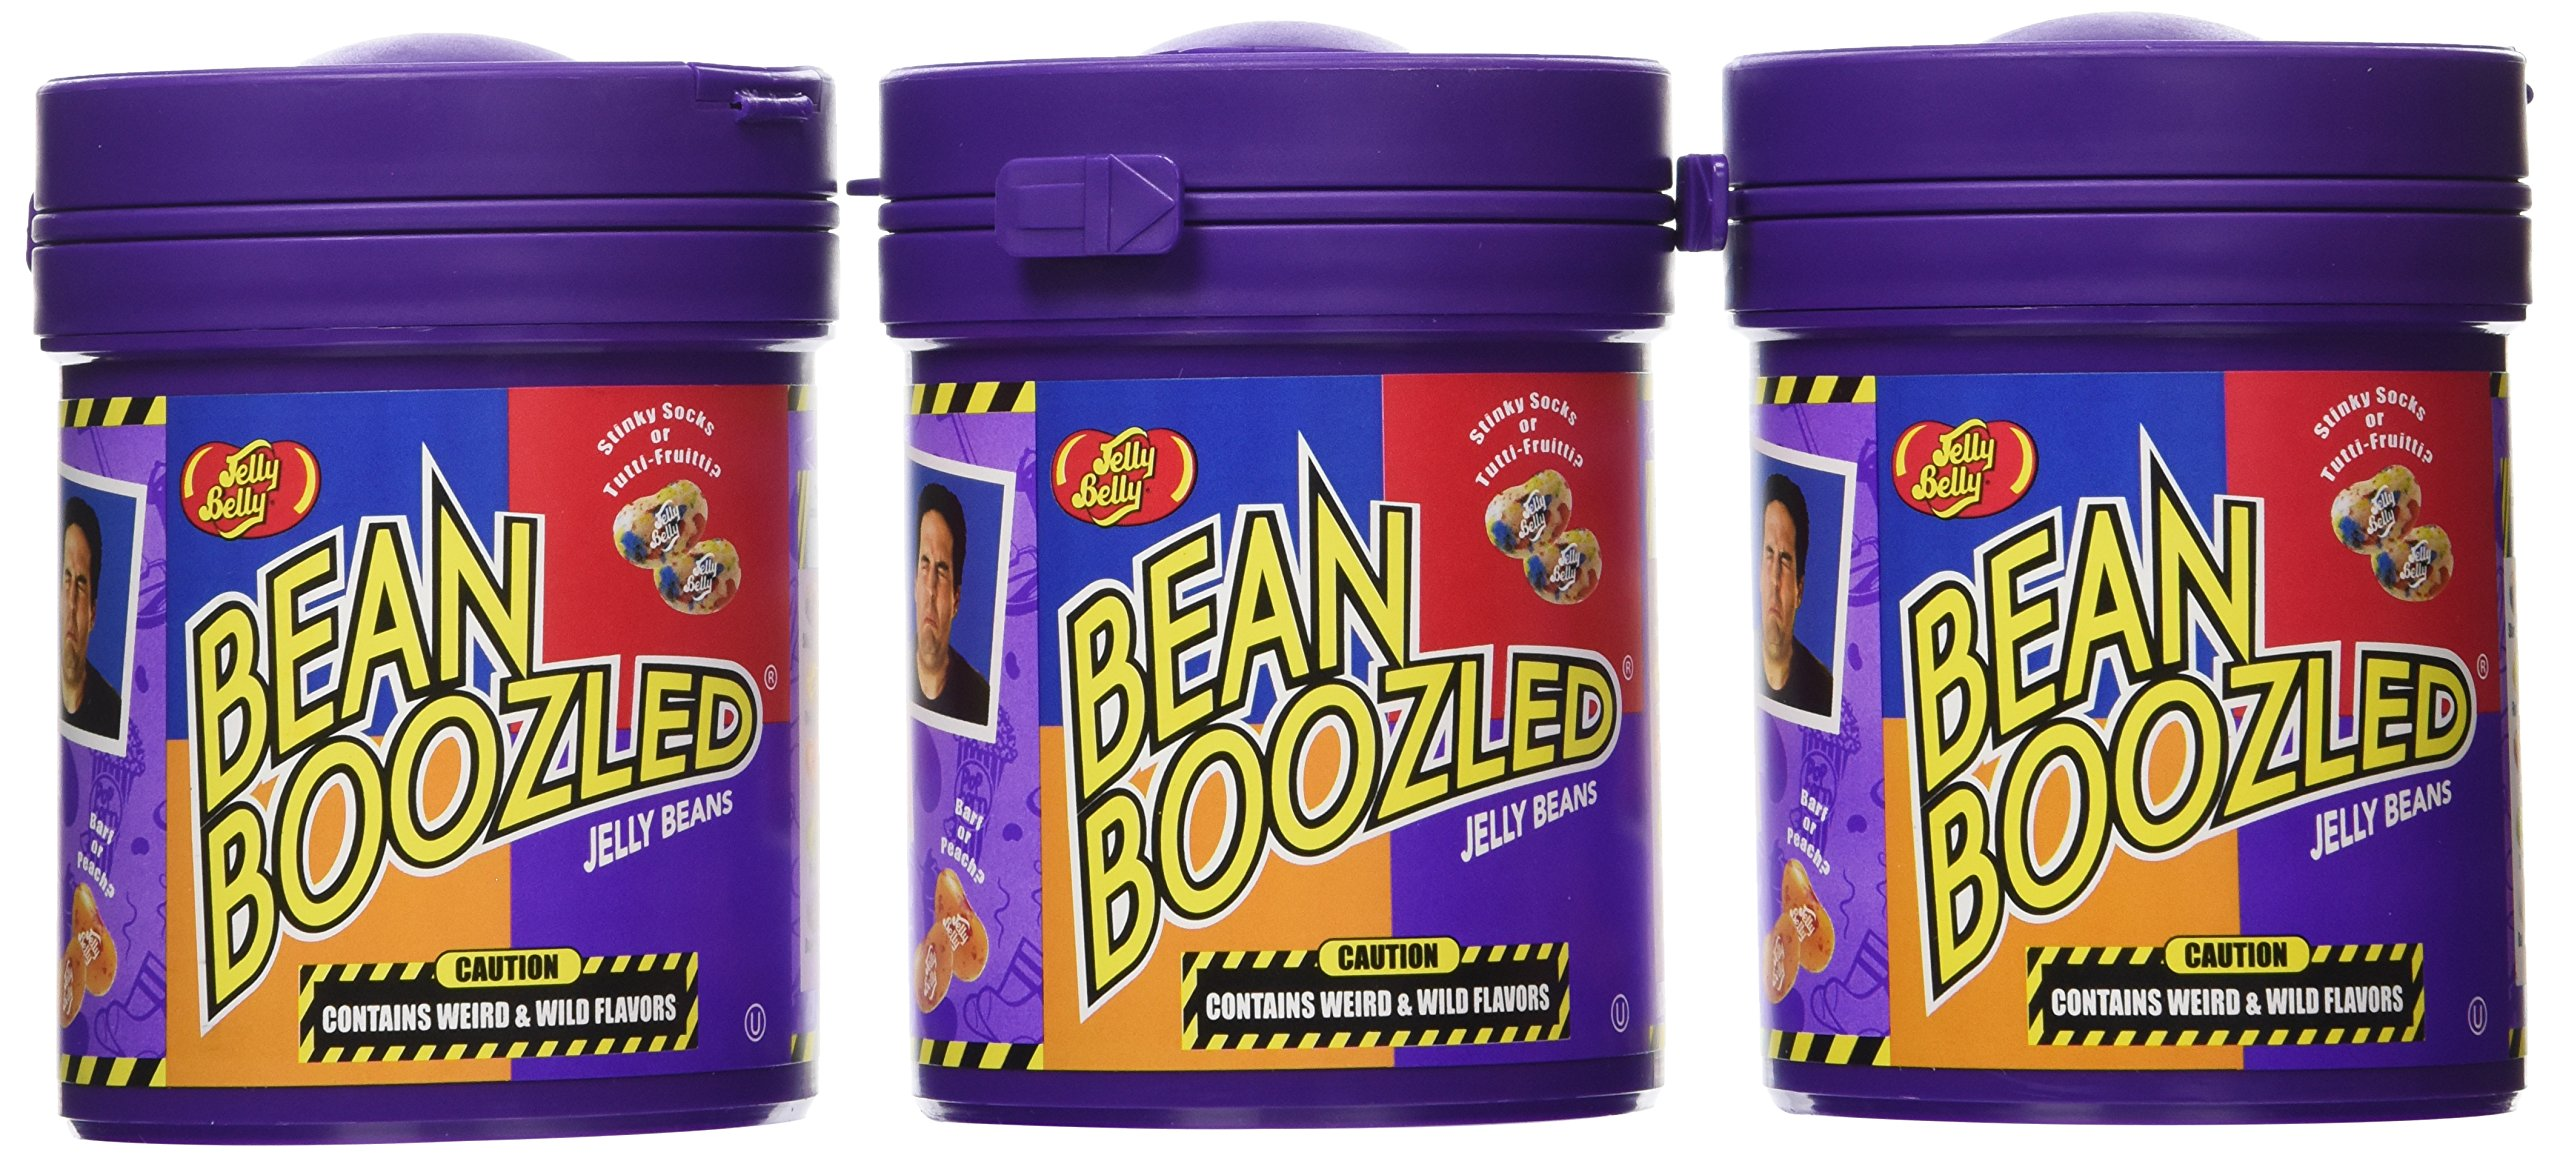 Jelly Belly 63965 3.5 Oz. Beanboozled Mystery Bean Dispenser (Pack of 12) by Jelly Belly (Image #2)